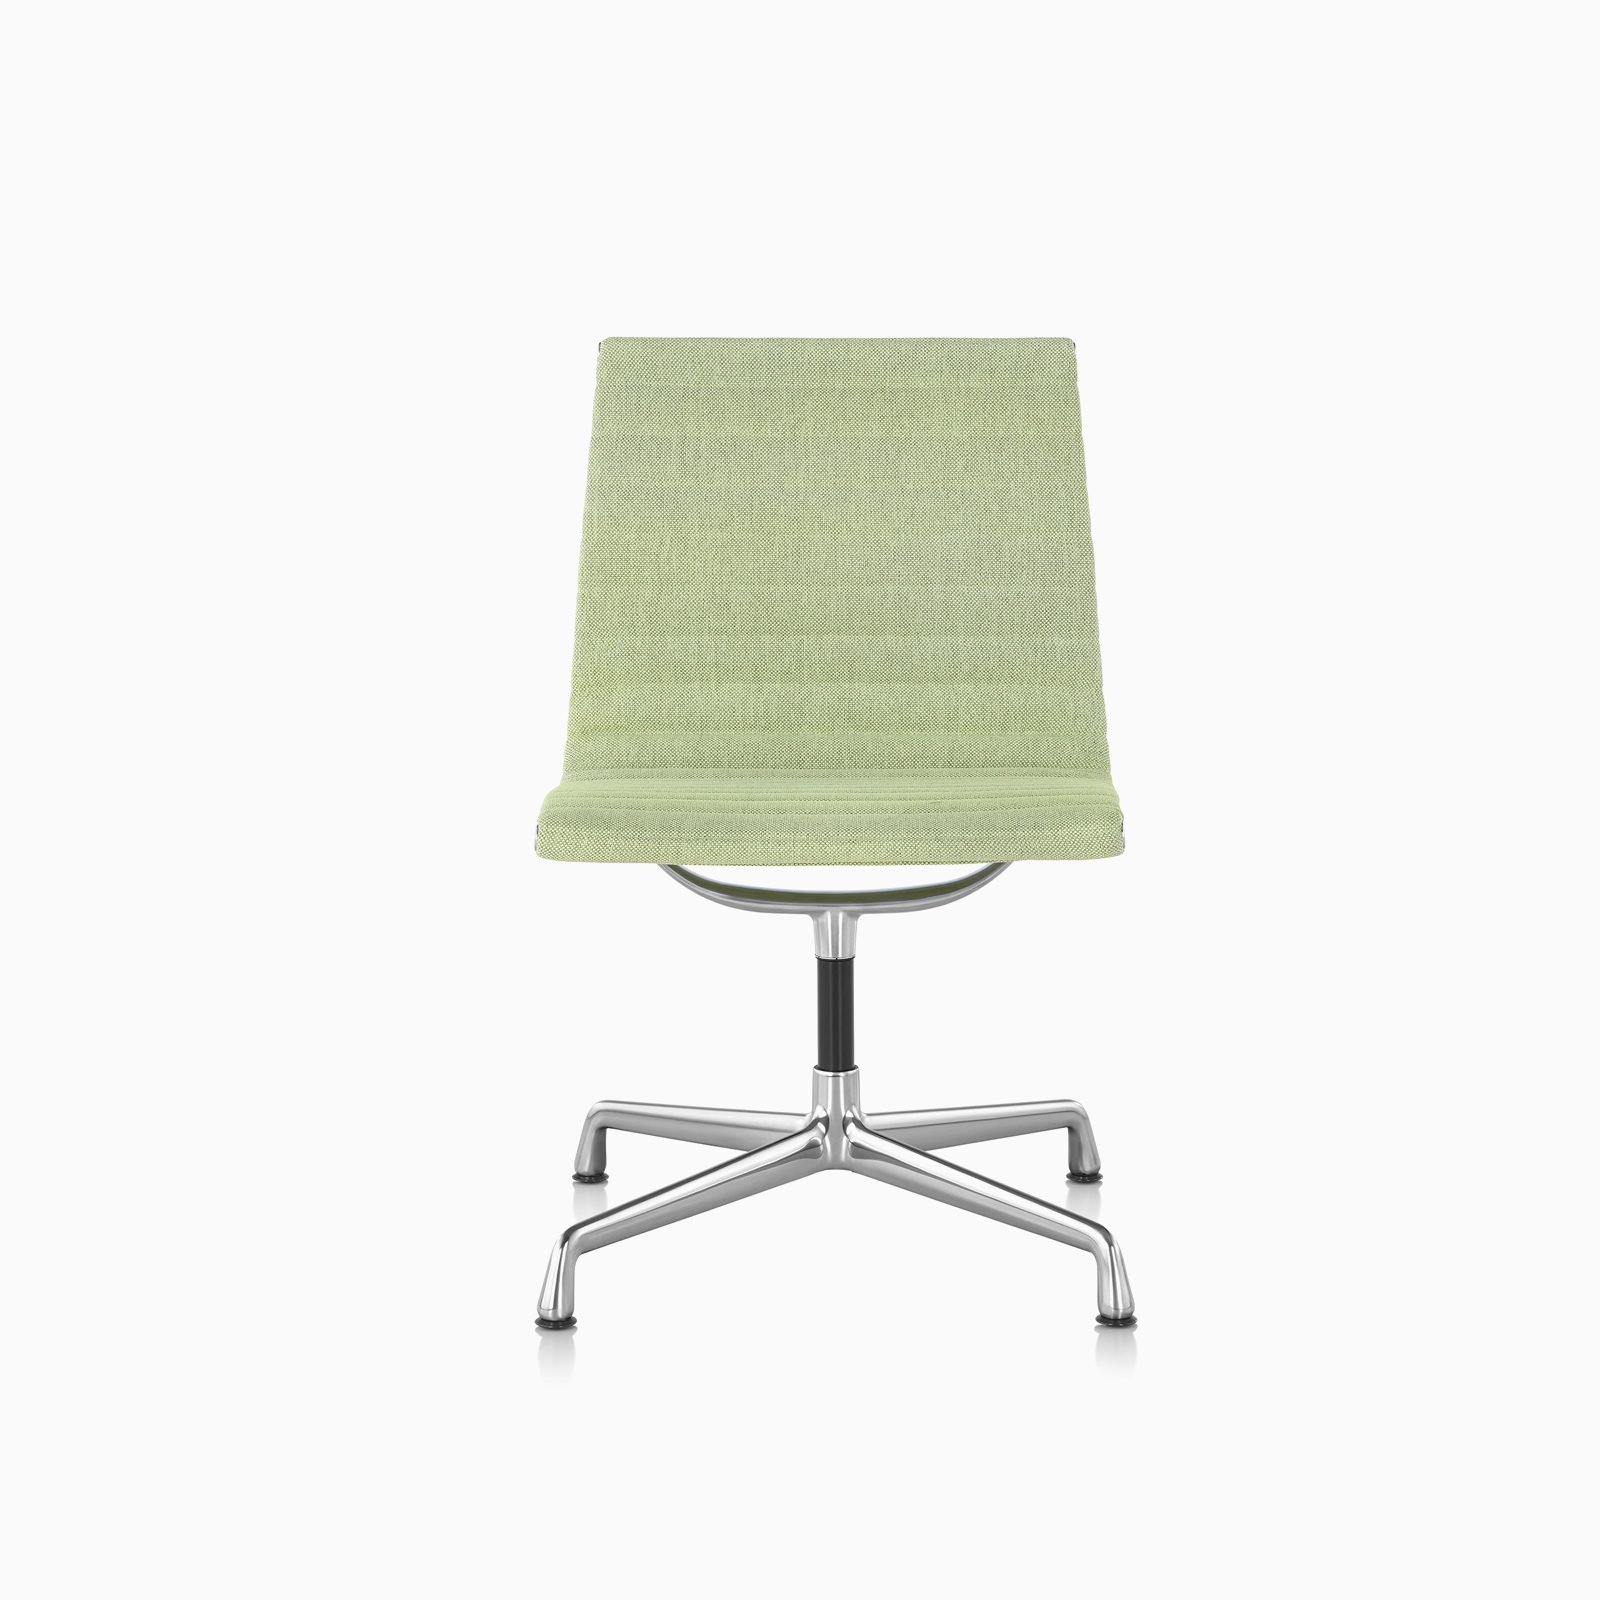 A Eames Aluminum Group side chair in Mode Yucca with polished aluminum base.